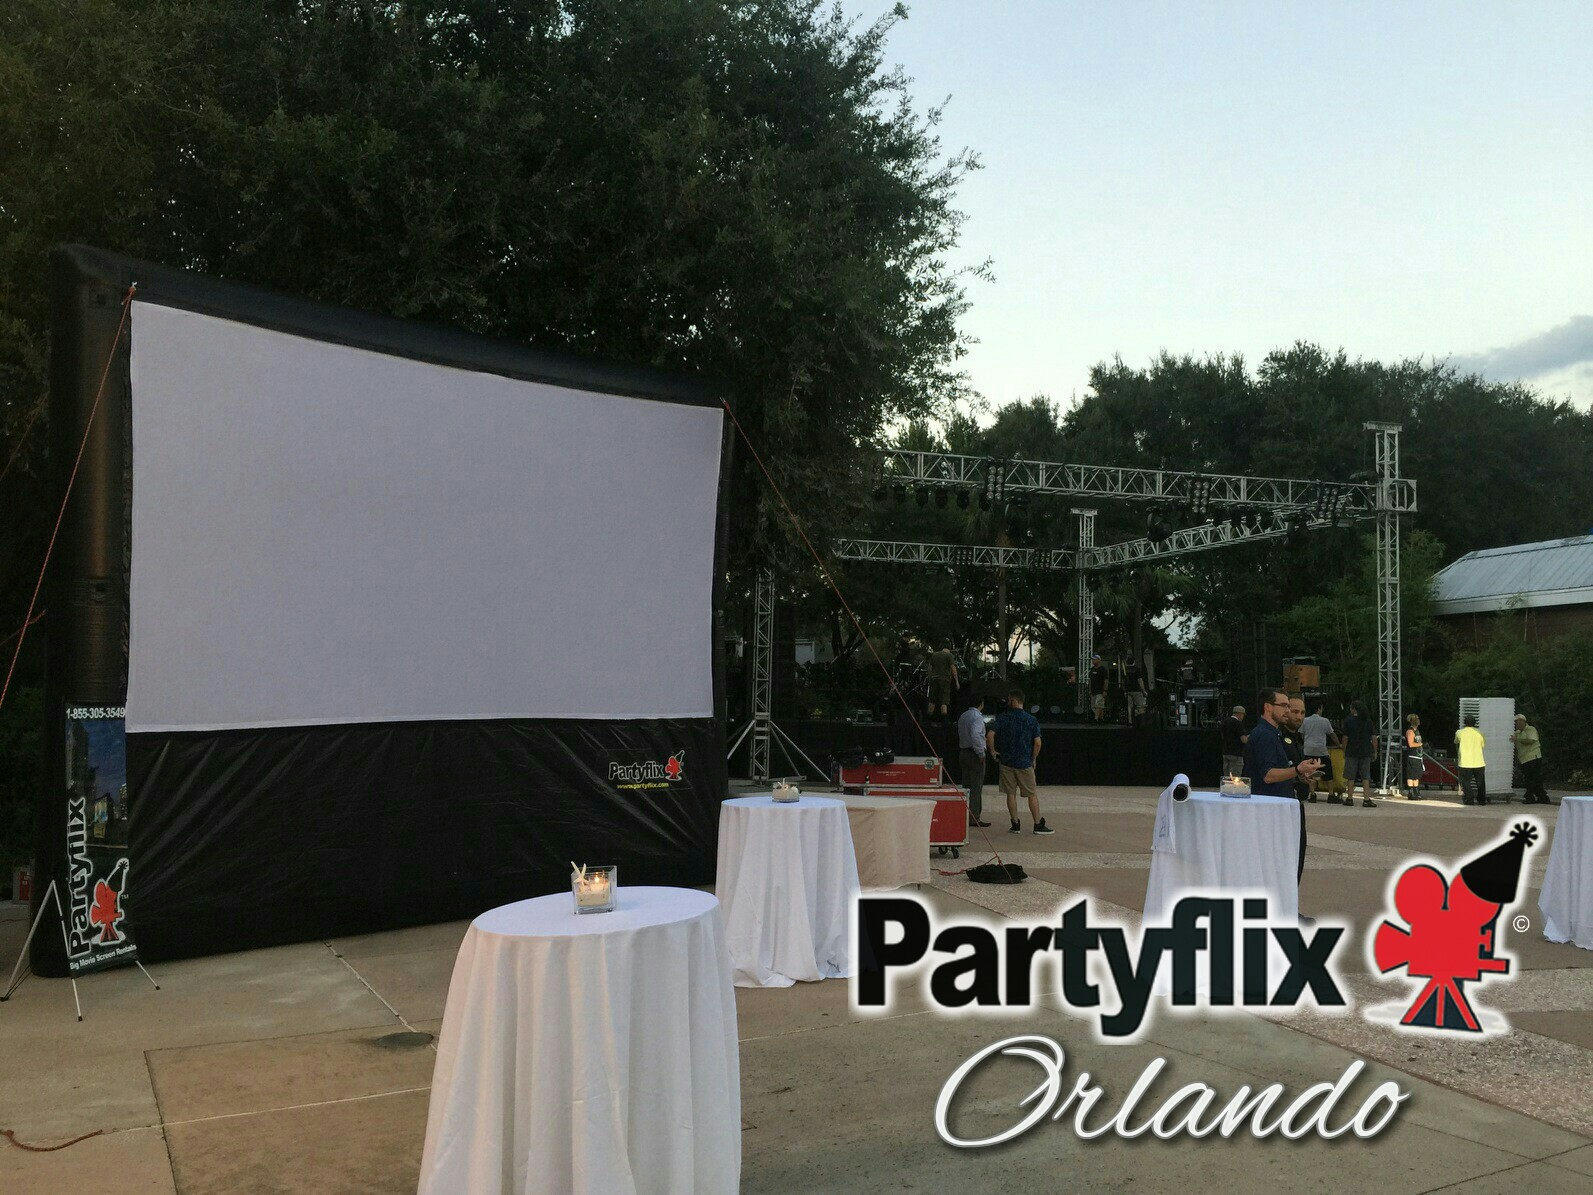 18ft Main EventInflatable Movie Screen (Orlando, FL)